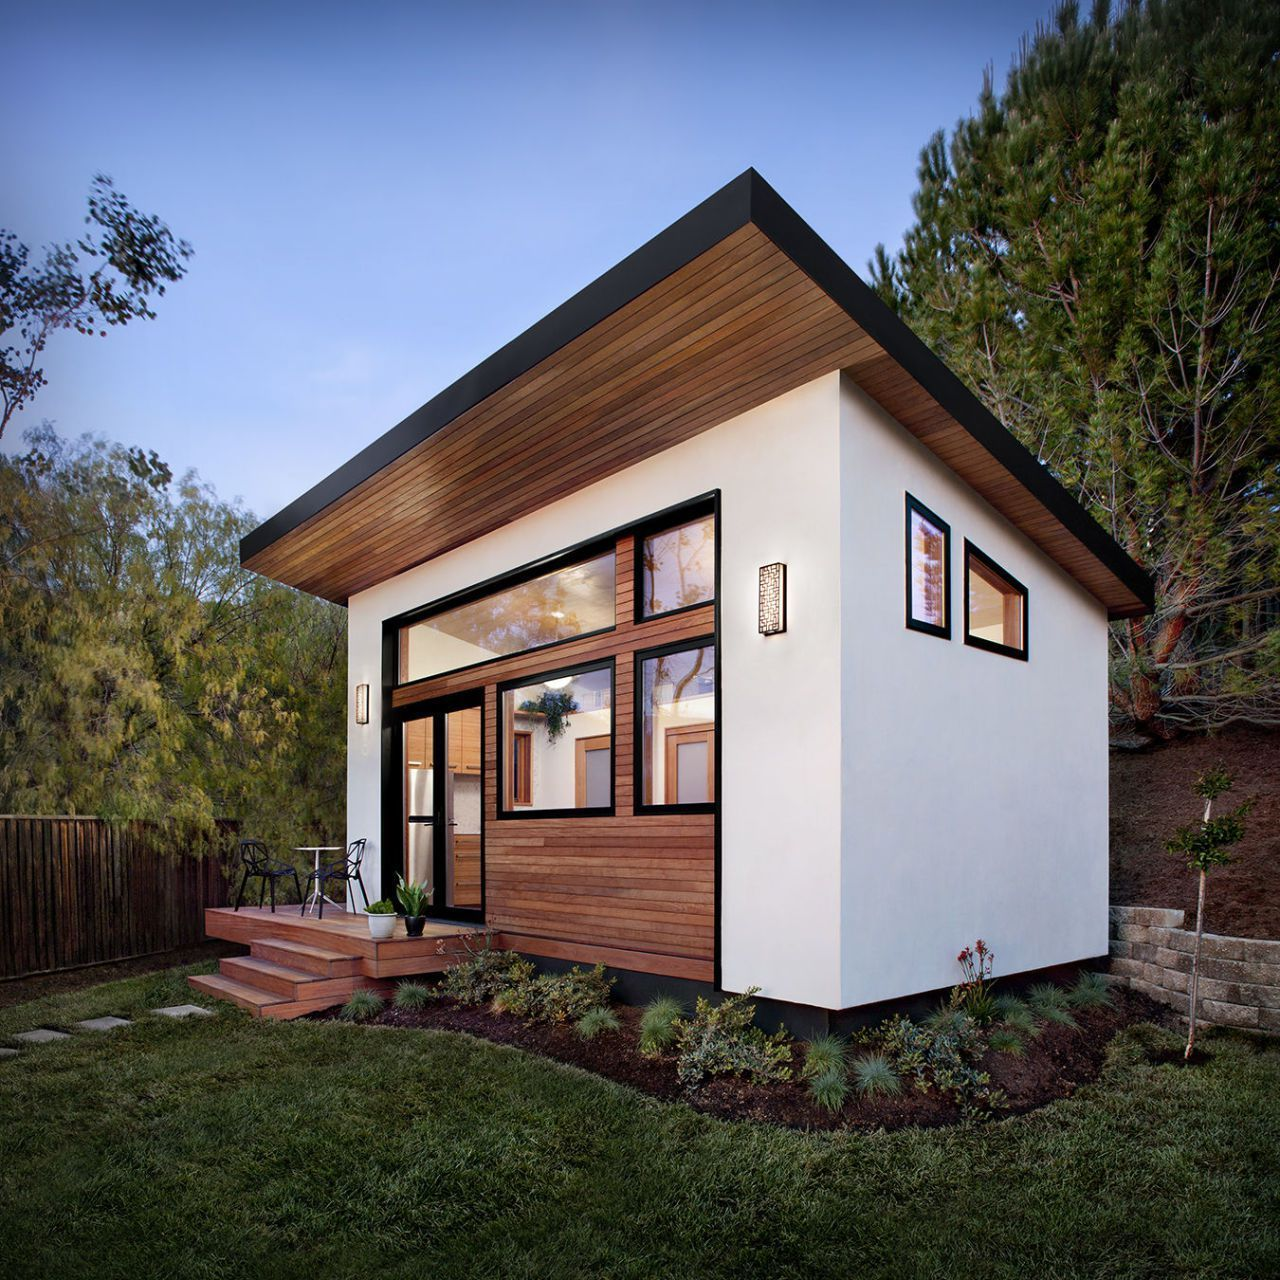 Annu Homes Studio House Villa Pre Fabricated Home The Emg Outlet Backyard Guest Houses Backyard Guest House Tiny House Design Backyard small guest house